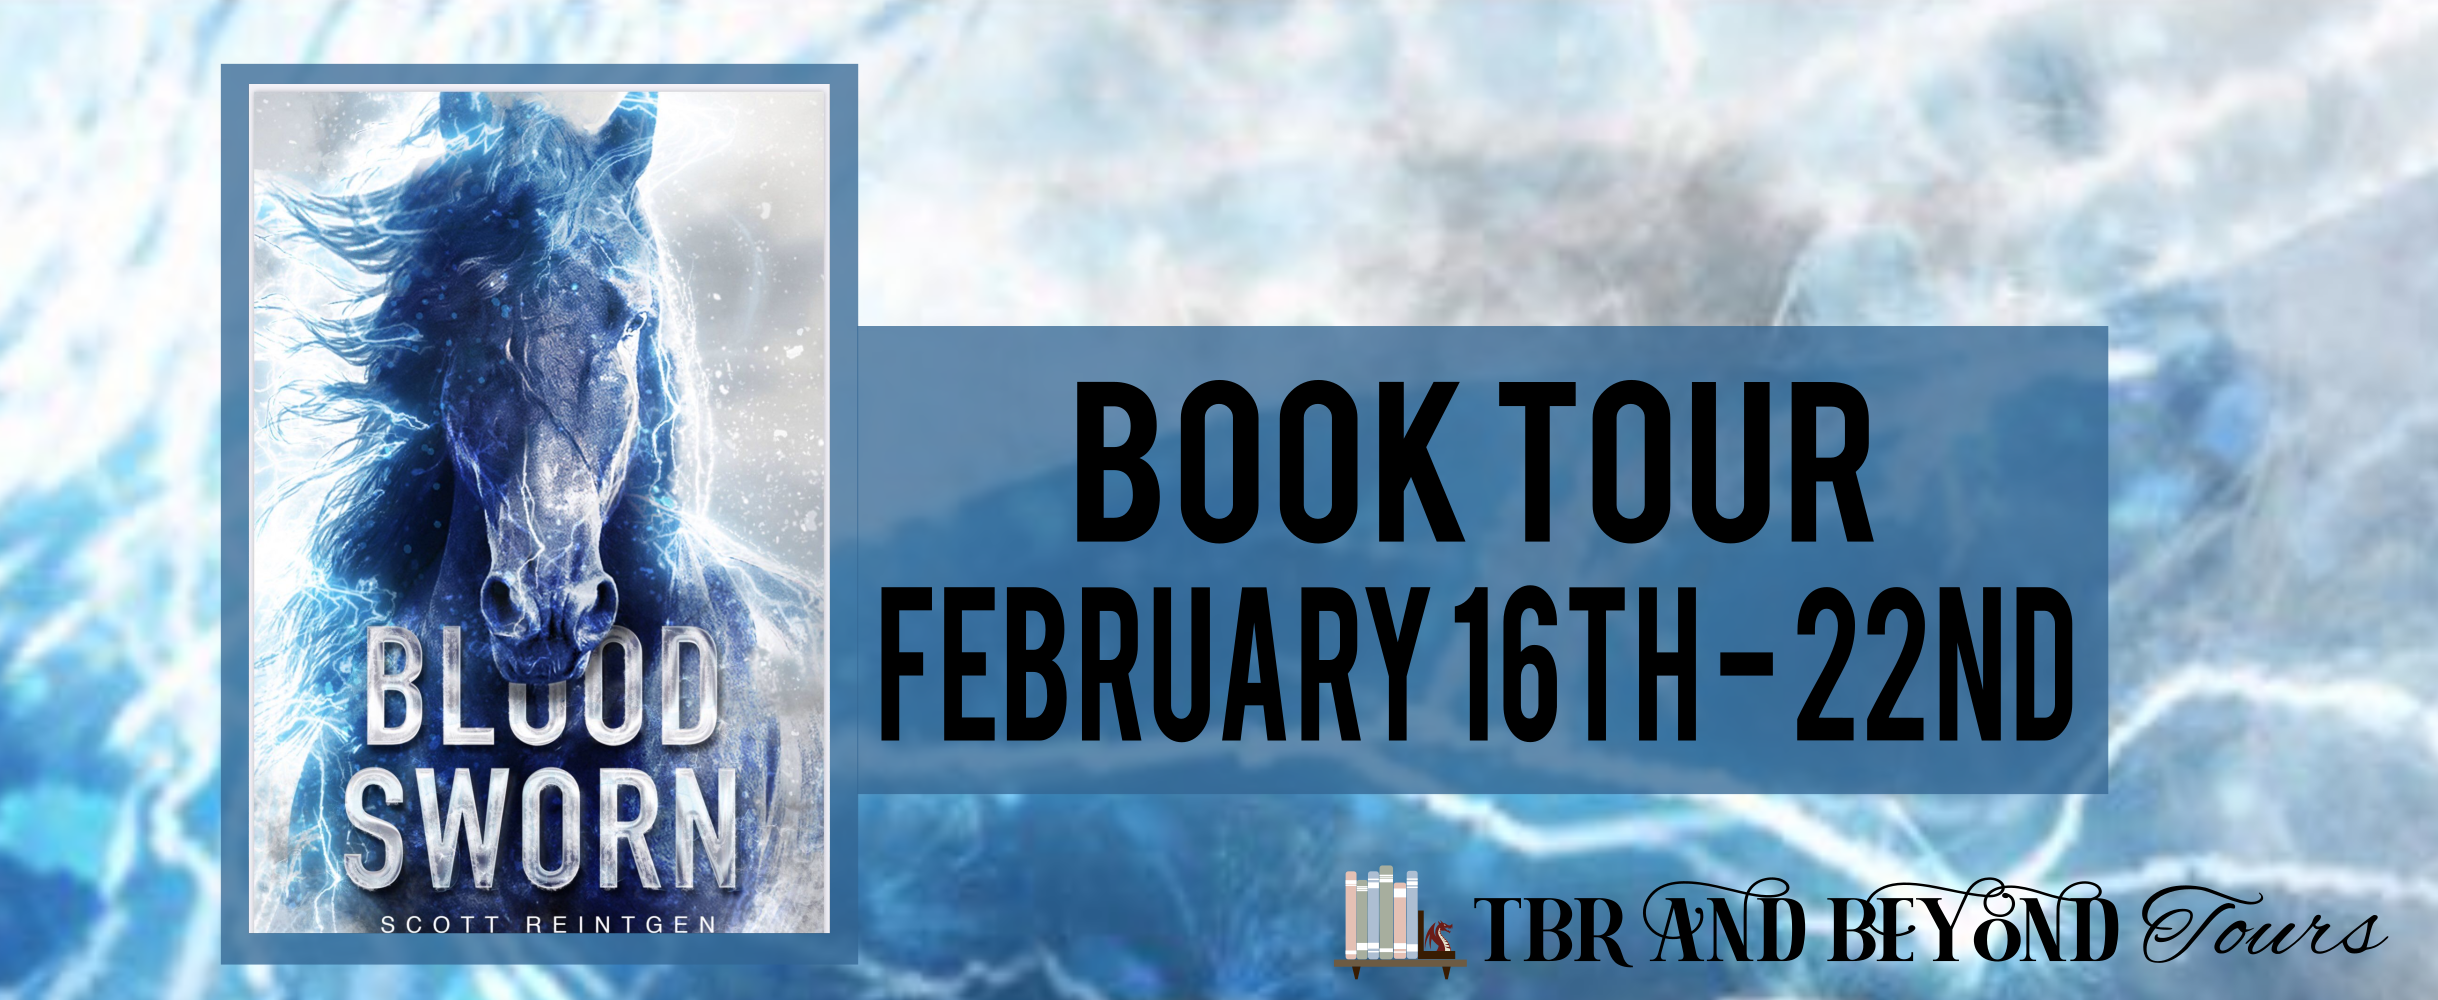 Blog Tour: Bloodsworn by Scott Reintgen (Interview + Bookstagram!)